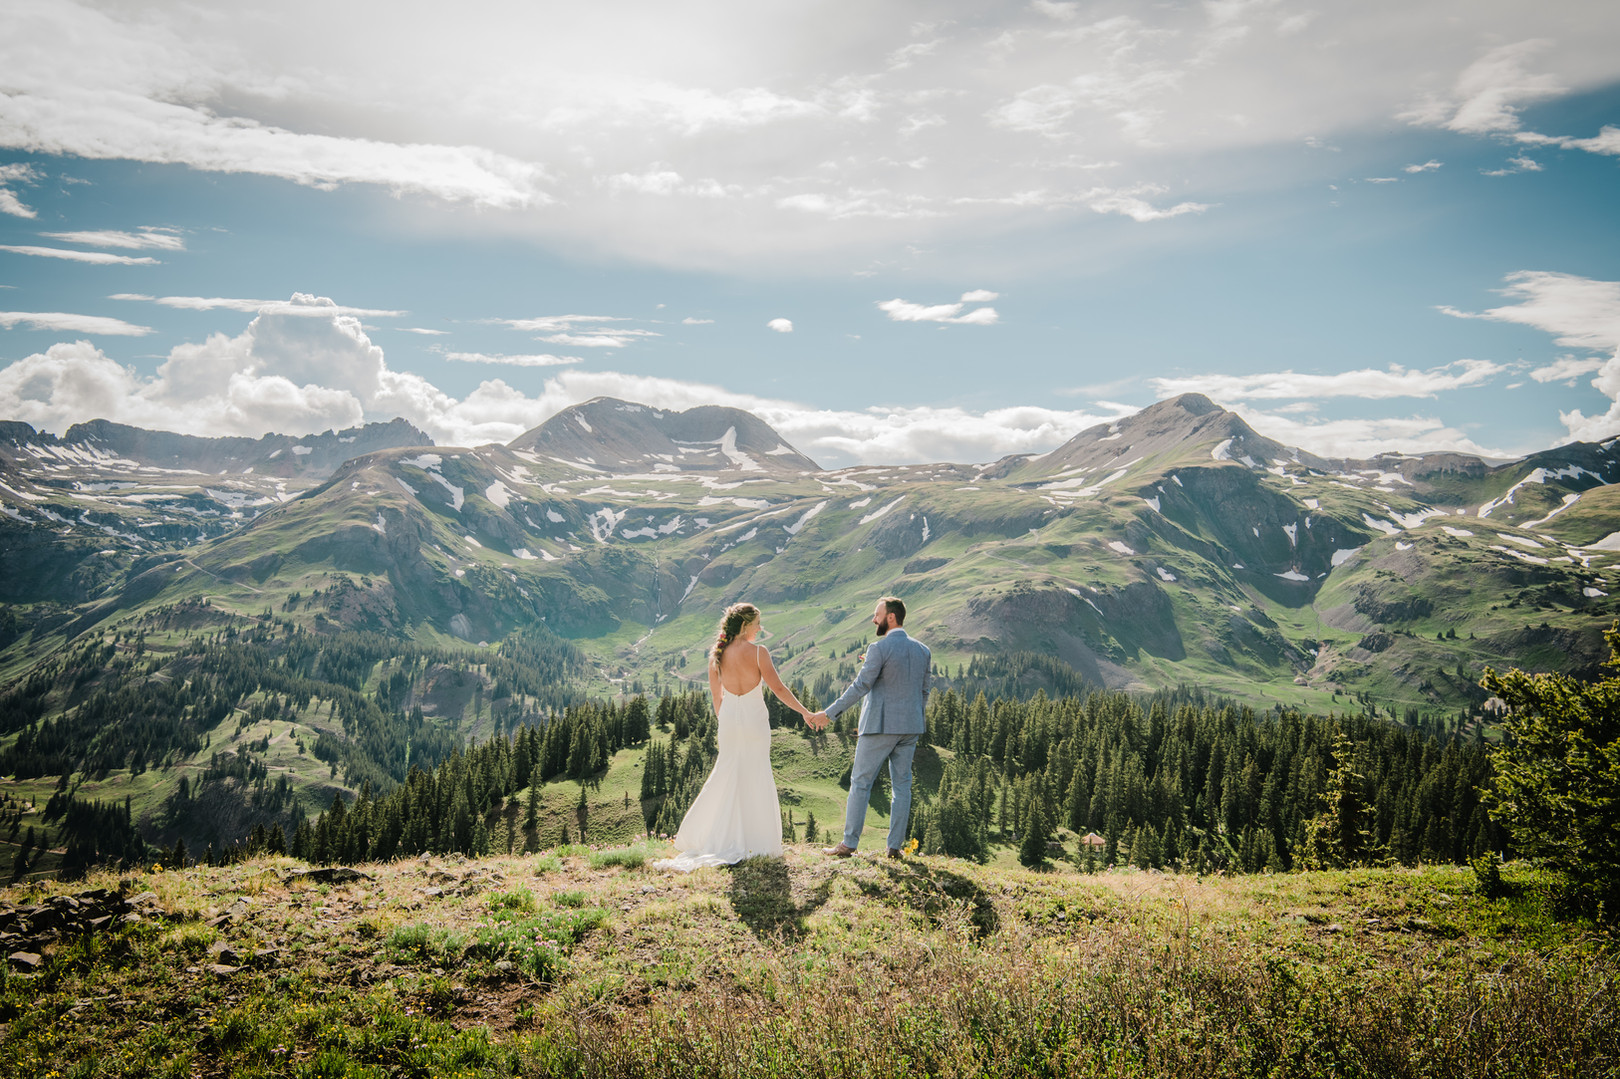 Alyssa & Cody's Mountain Elopement